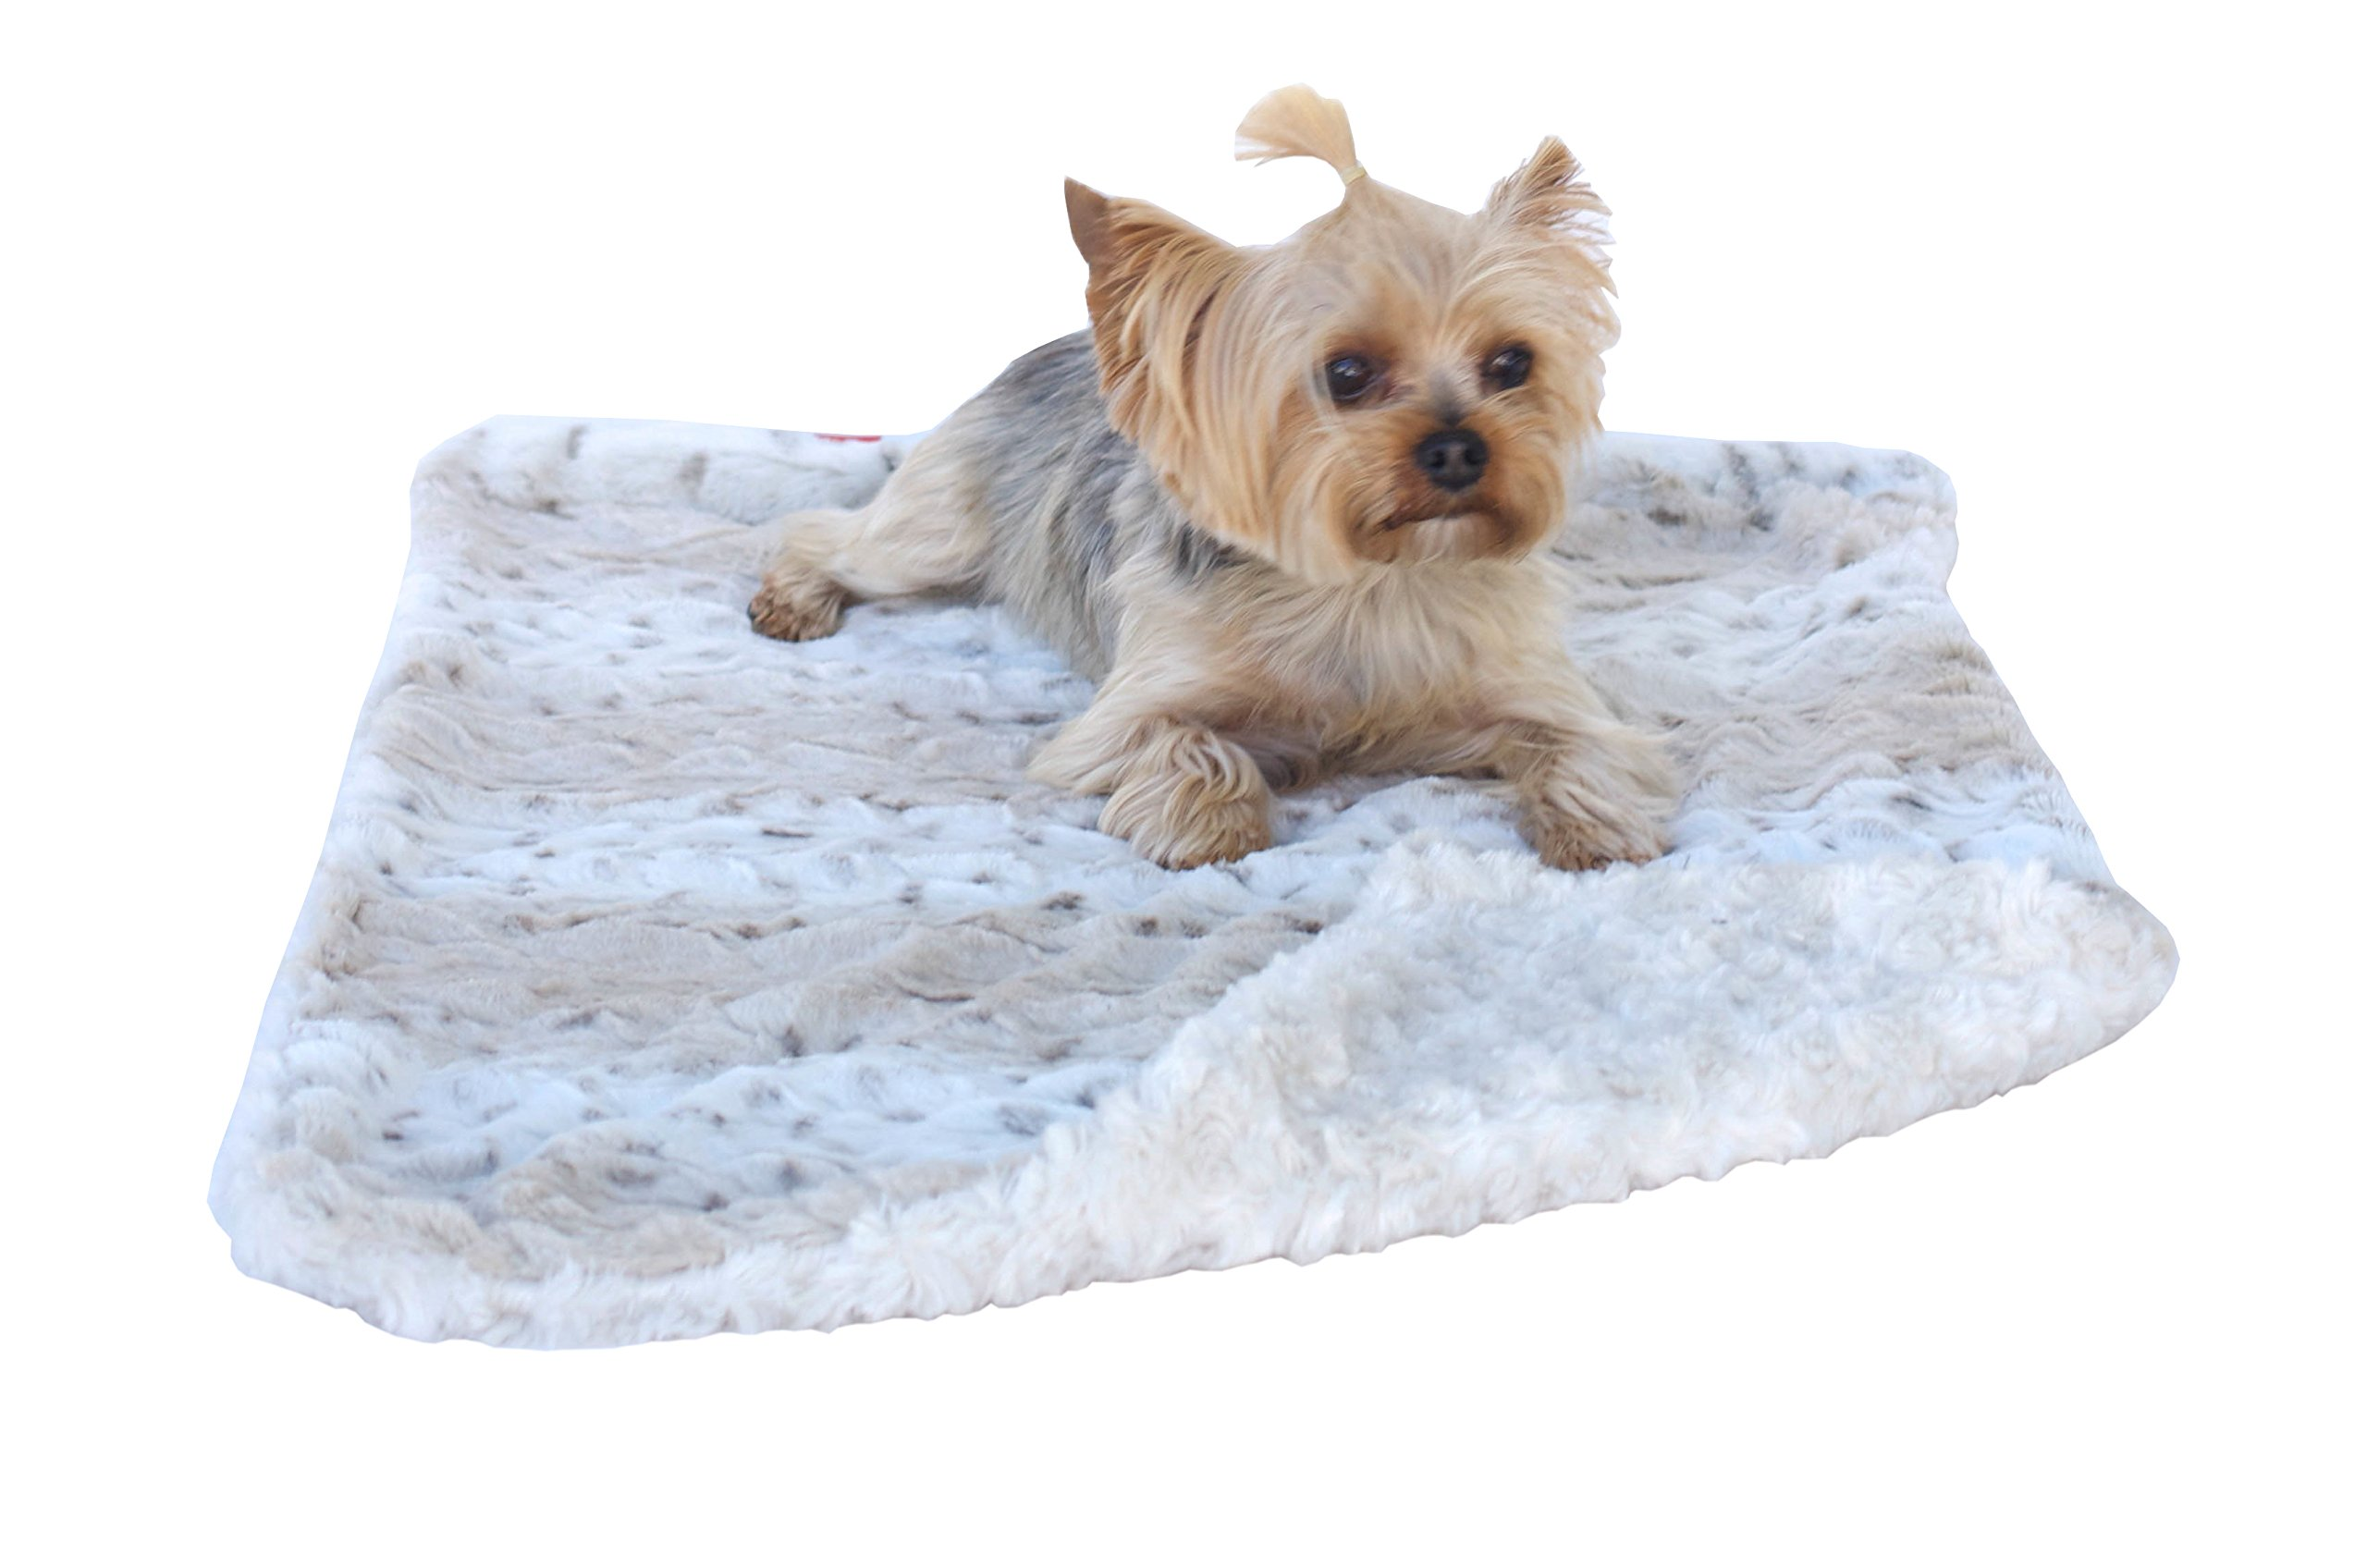 The Dog Squad Minkie Binkie Blanket Frosted Snow Leopard, 36 by 58 Square Feet